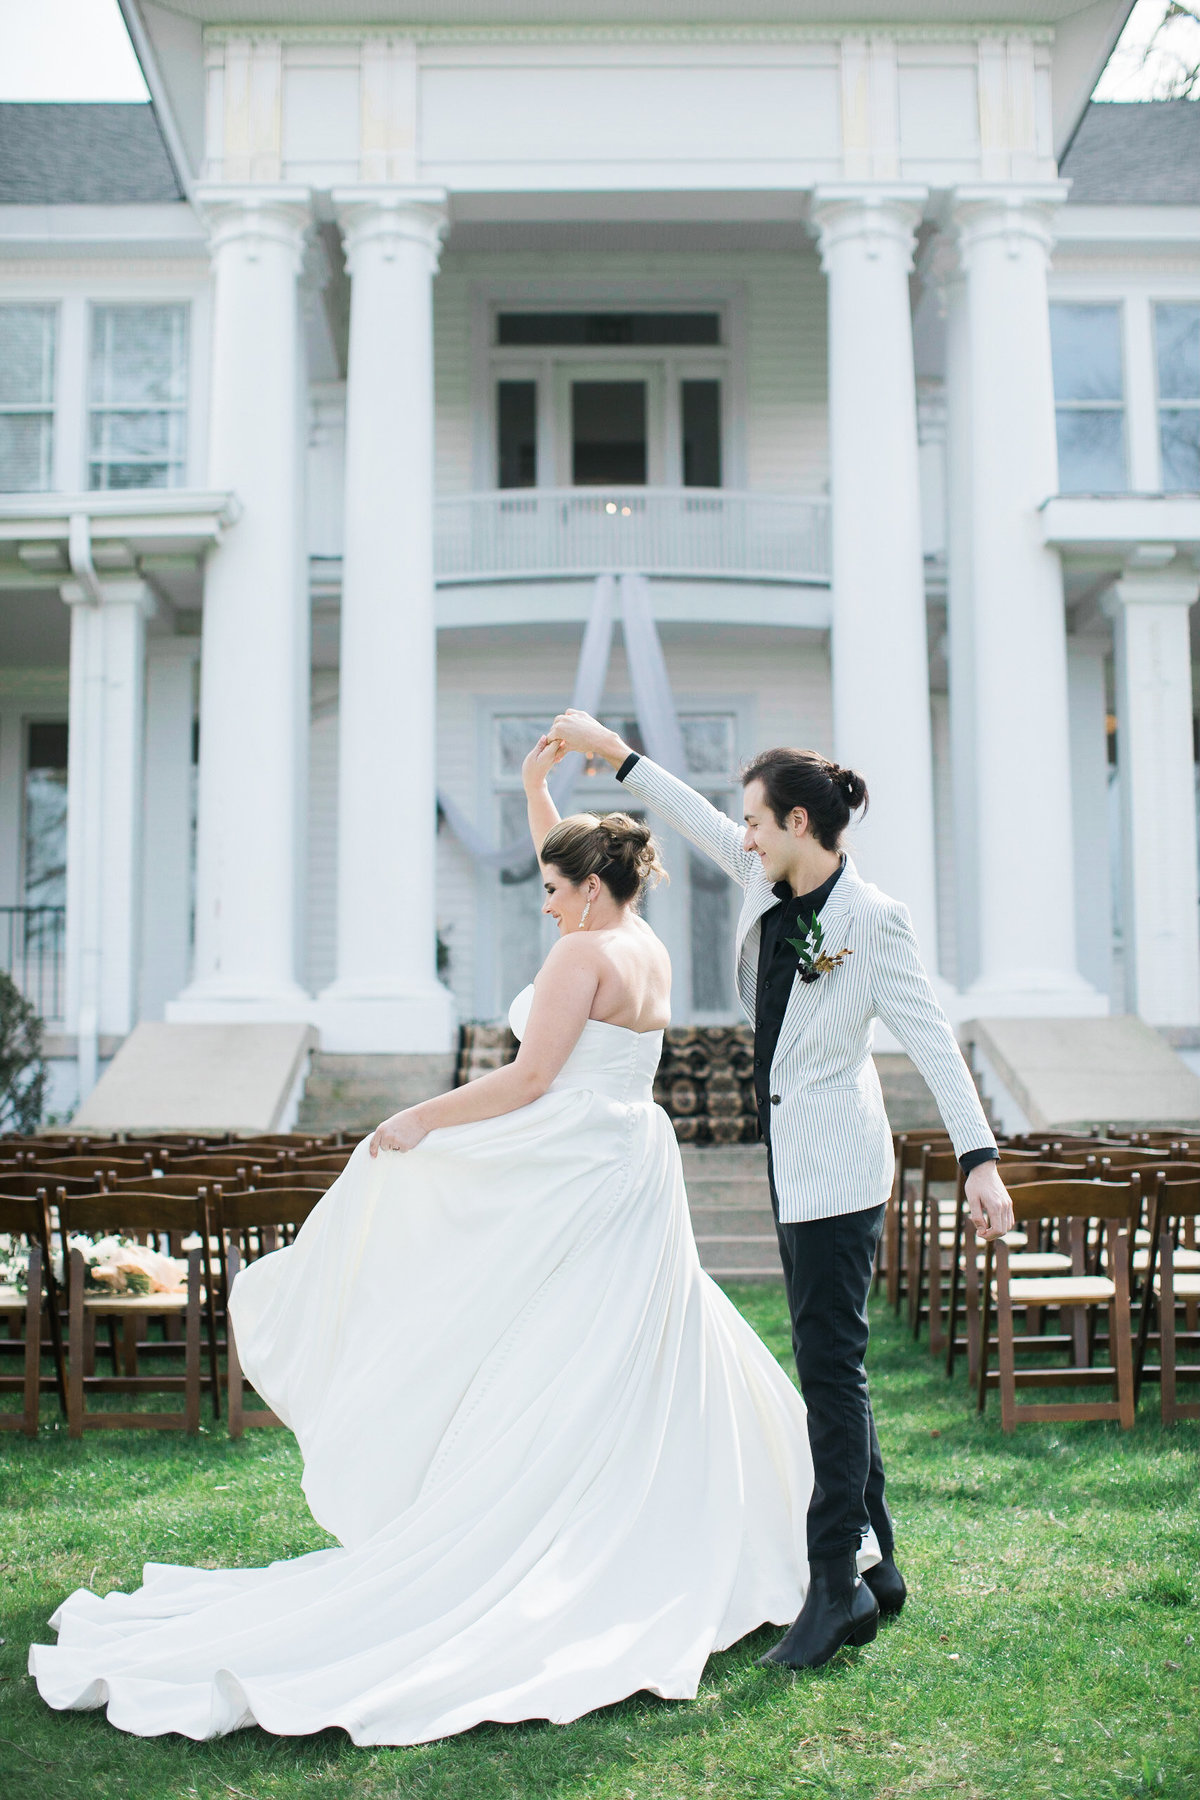 Wedding Photographer, bride and groom dancing outside of estate building